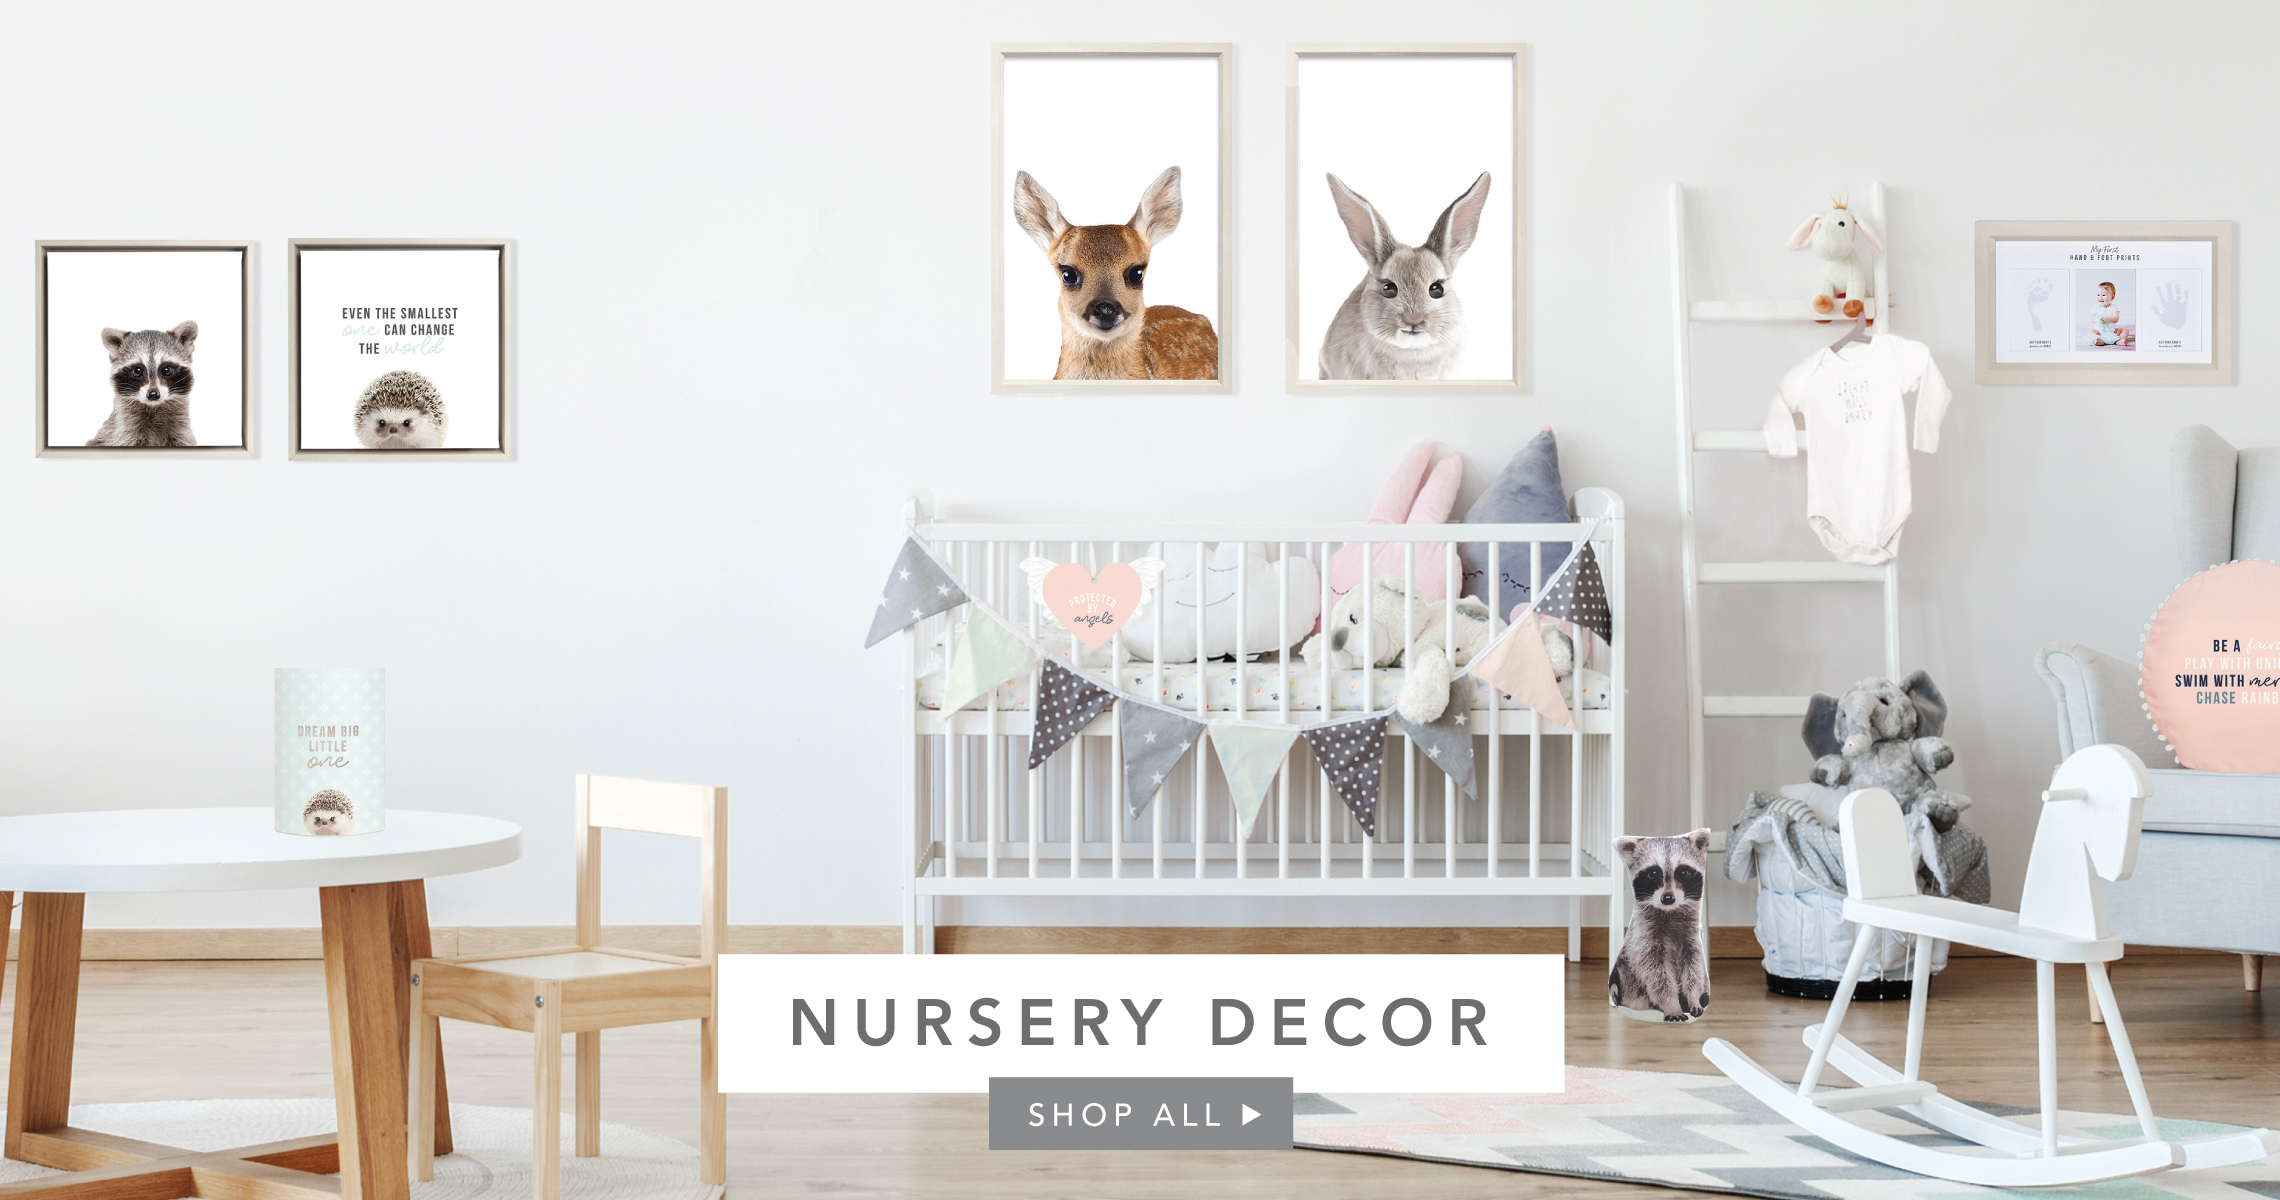 Shop all nursery decor